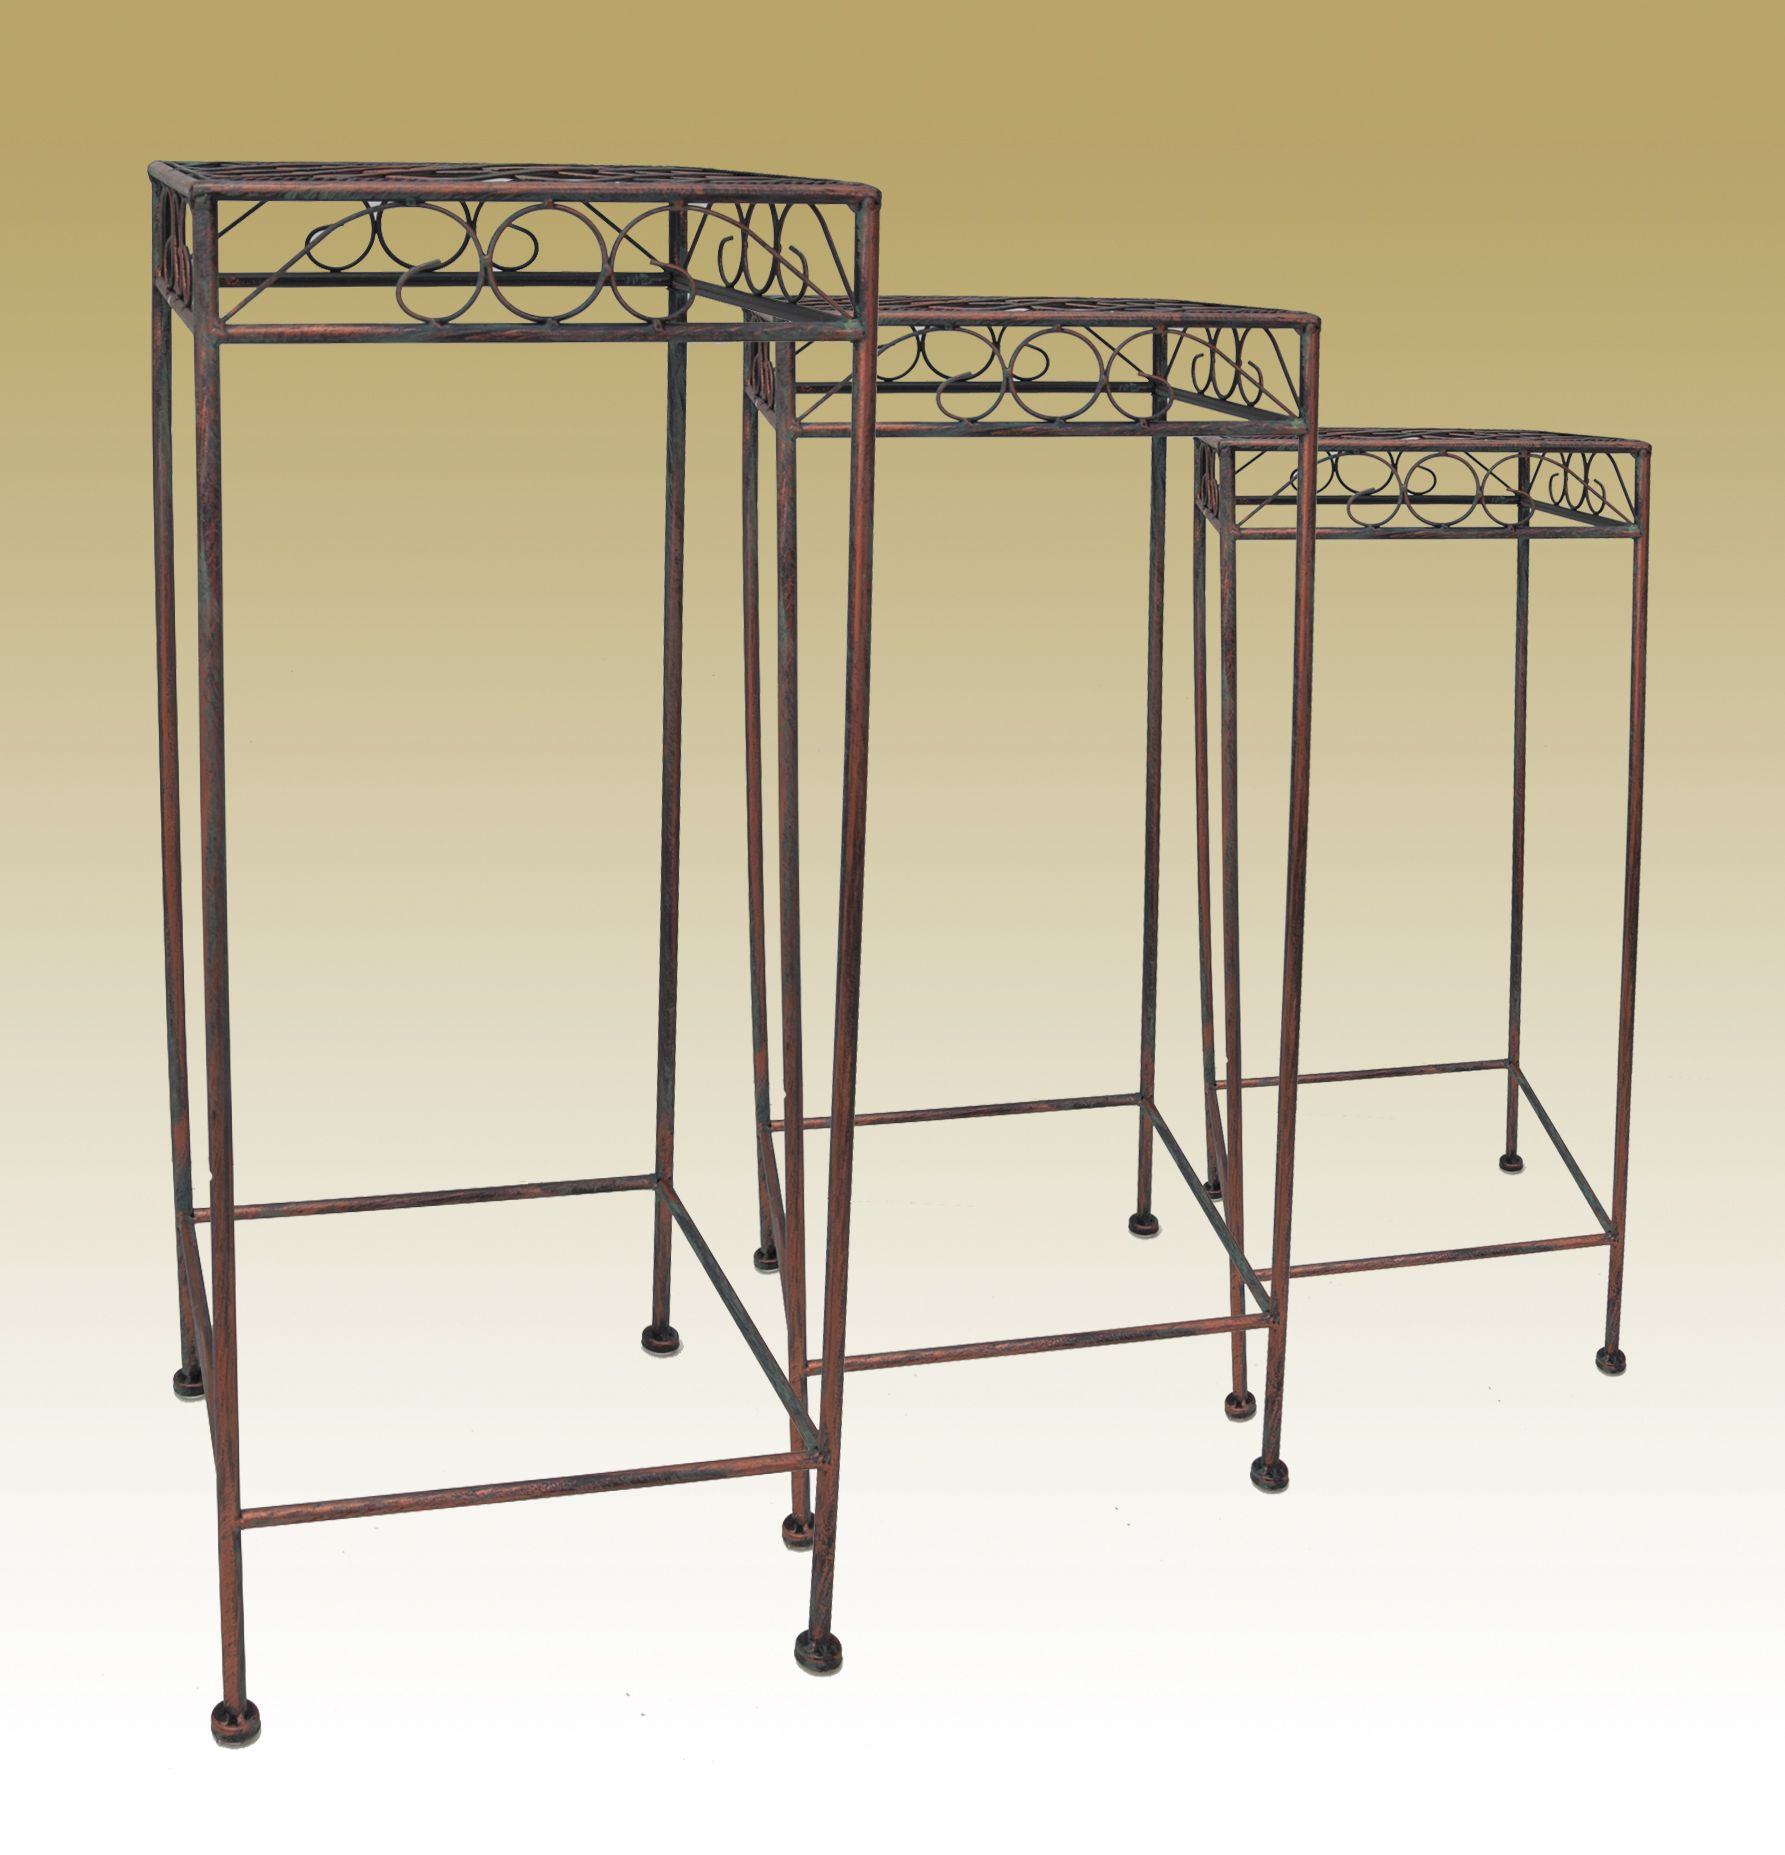 SQUARE PLANT STANDS AVAILABLE IN SMALL, MEDIUM, LARGE (36650-61)